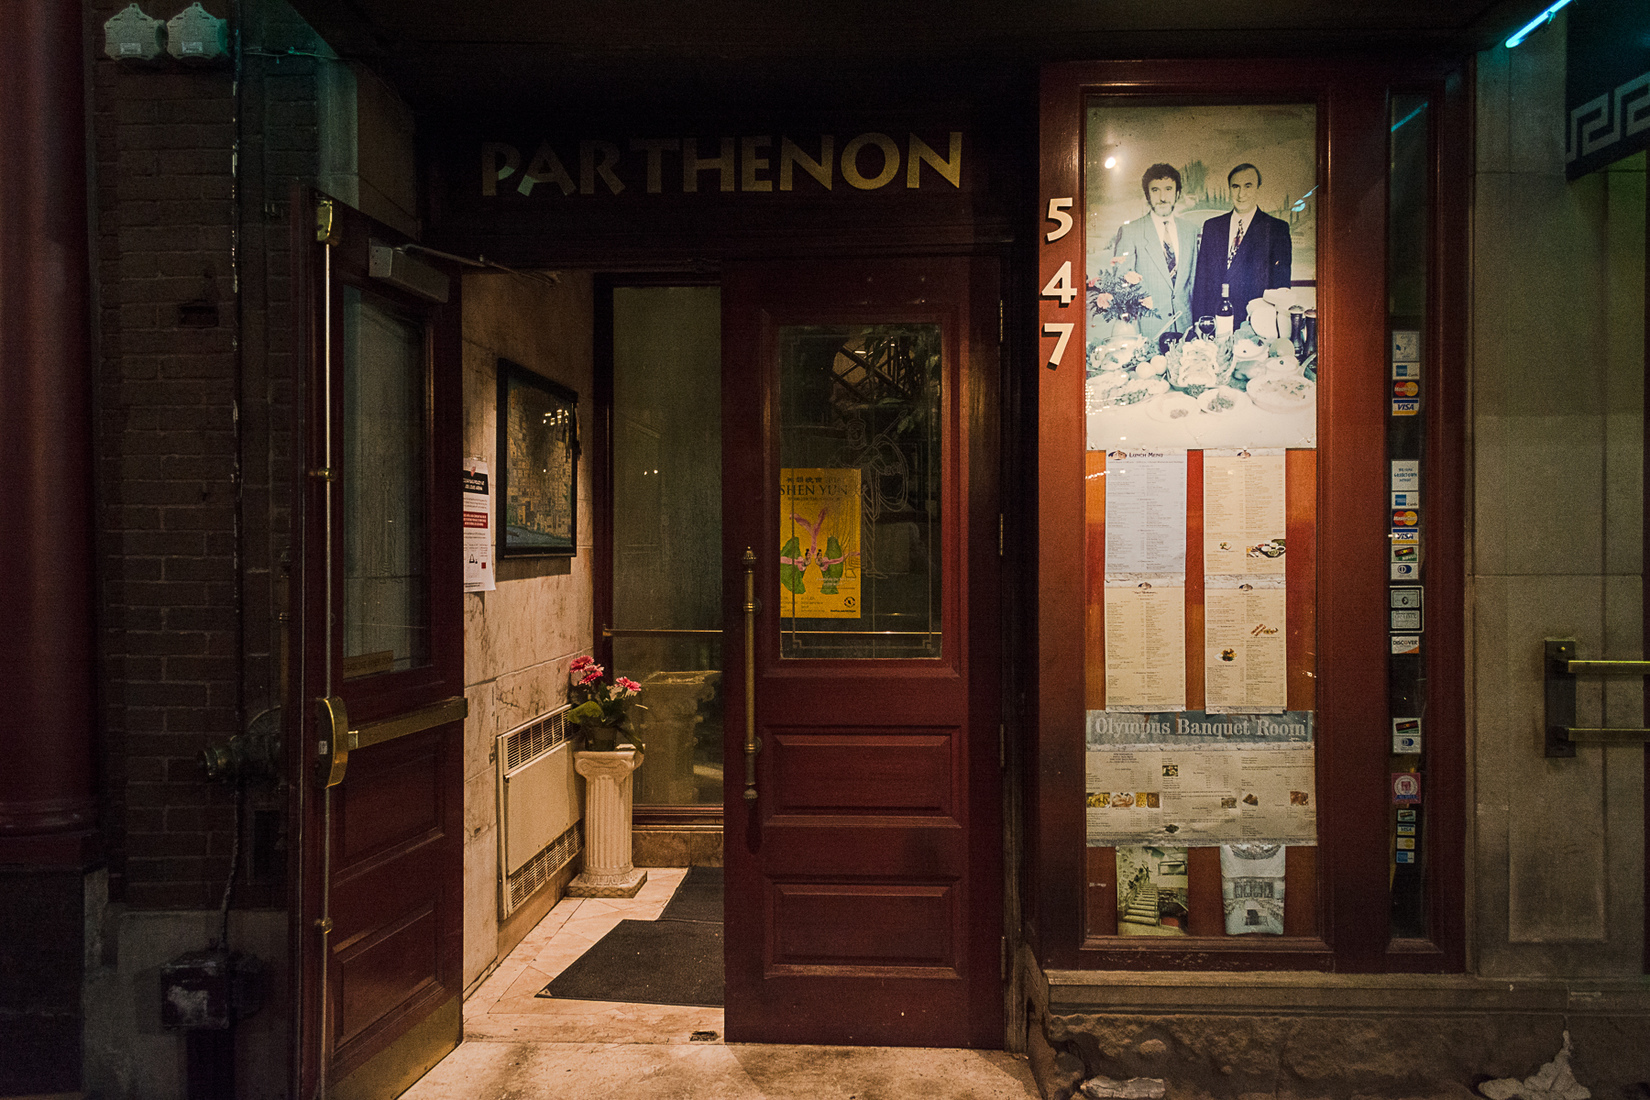 Detroit Old Parthenon Door - Greektown